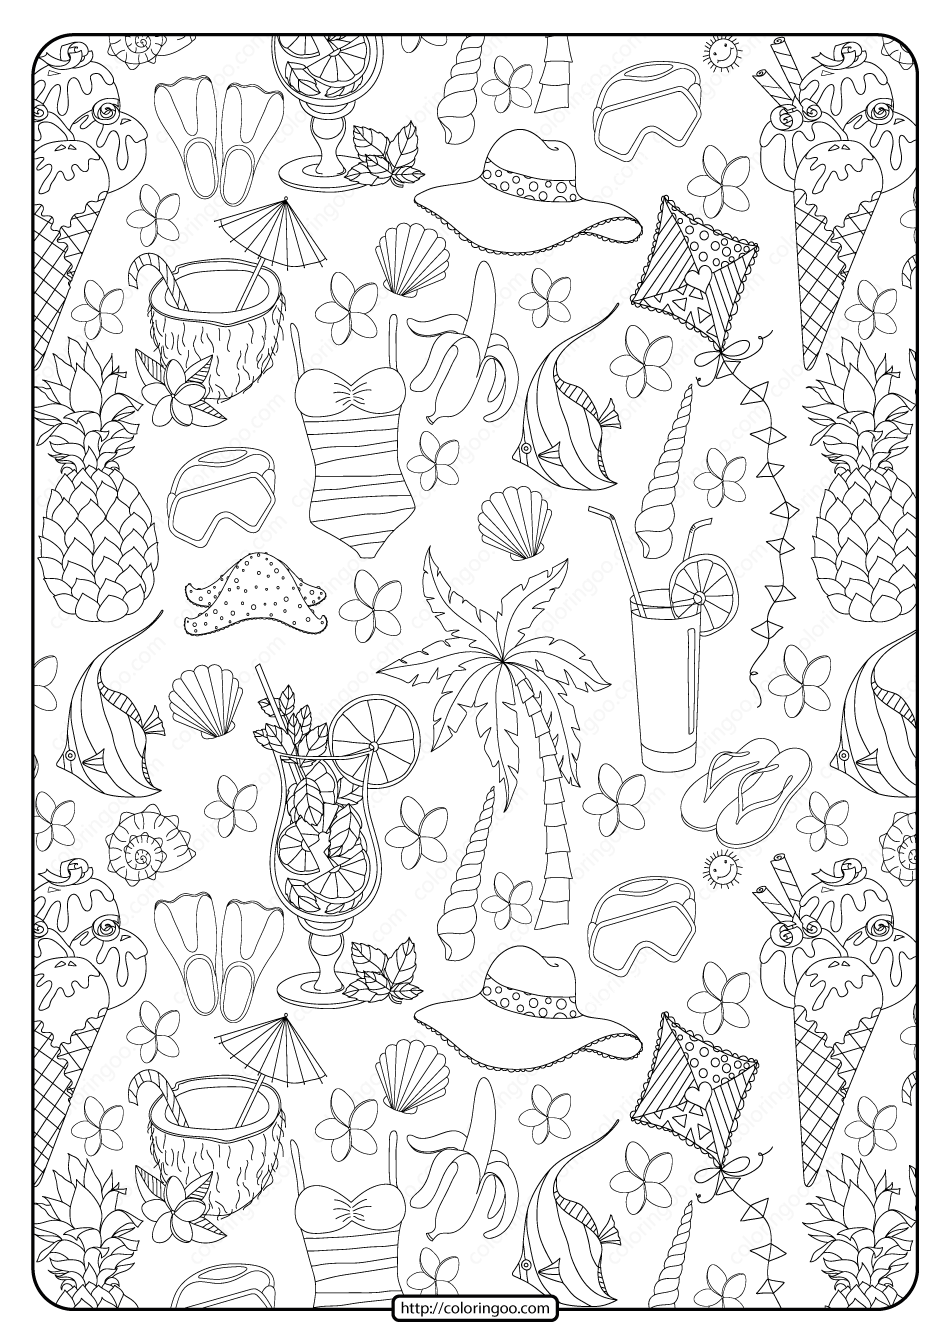 Free Printable Summer Collage Pdf Coloring Page